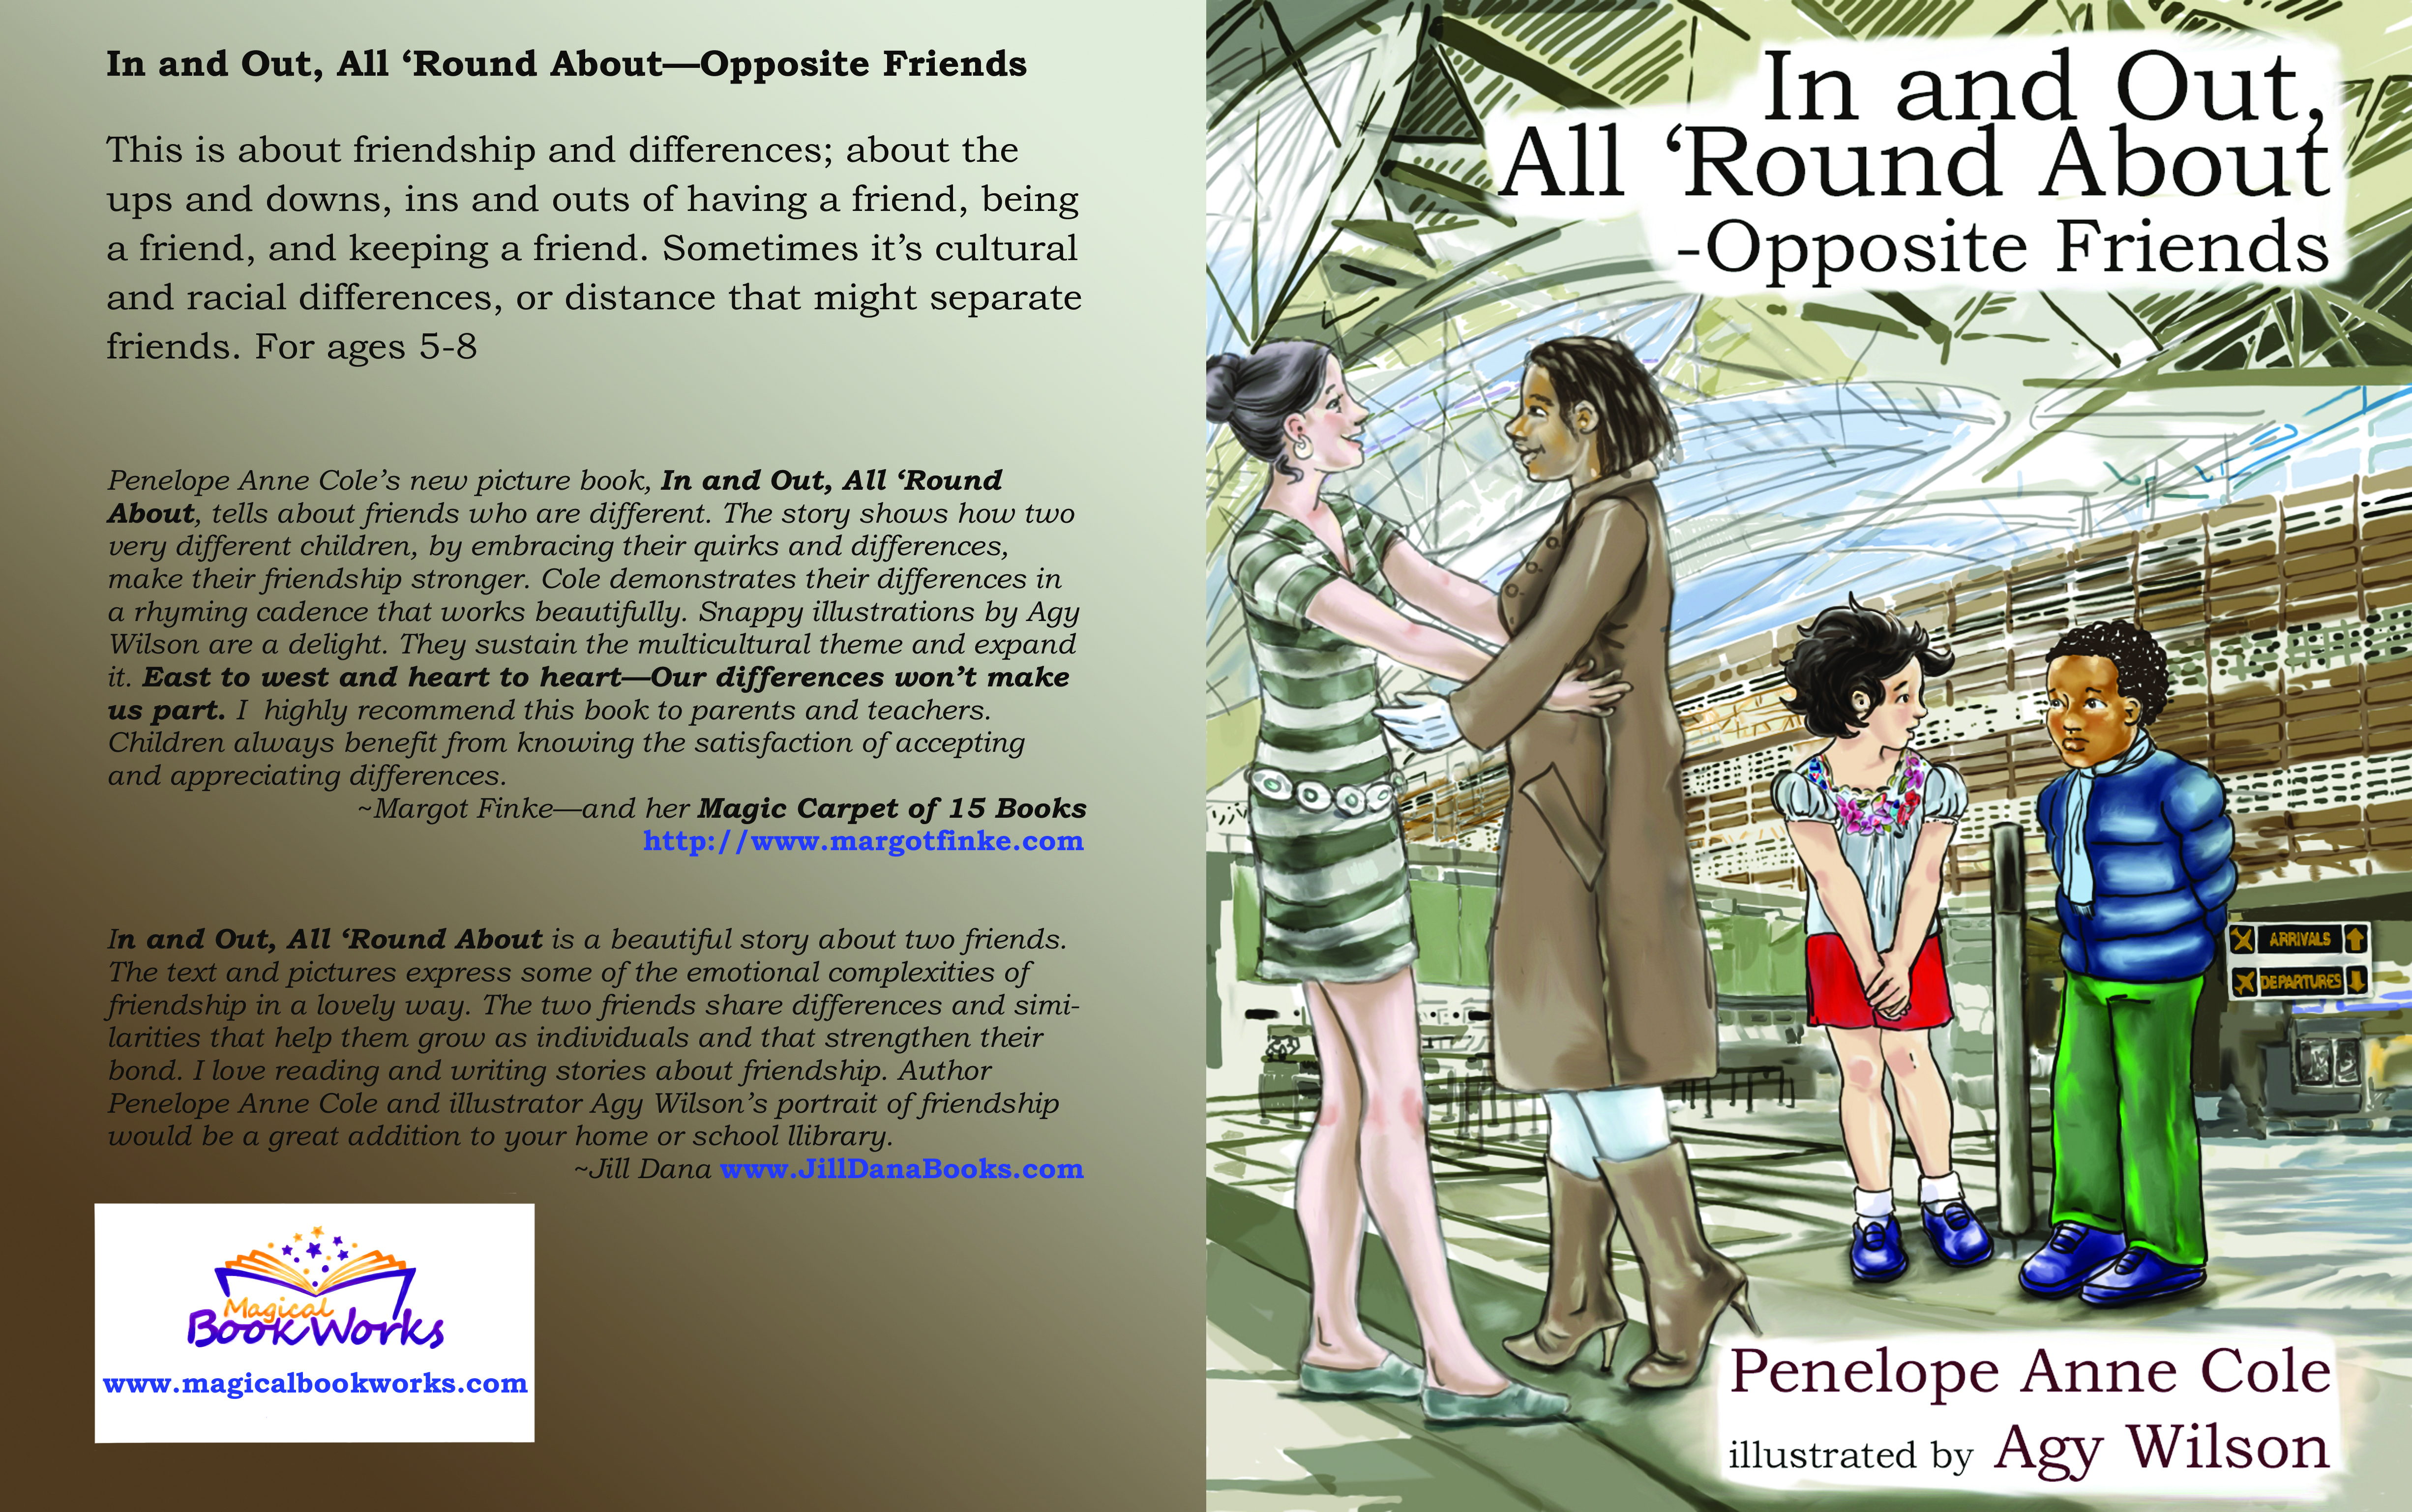 In and Out, All 'Round About—Opposite Friends, Penelope Anne Cole, illustrated by Agy Wilson Published by Magic Book Works, 2016, Penelope Anne Cole author, Agy Wilson illustrator